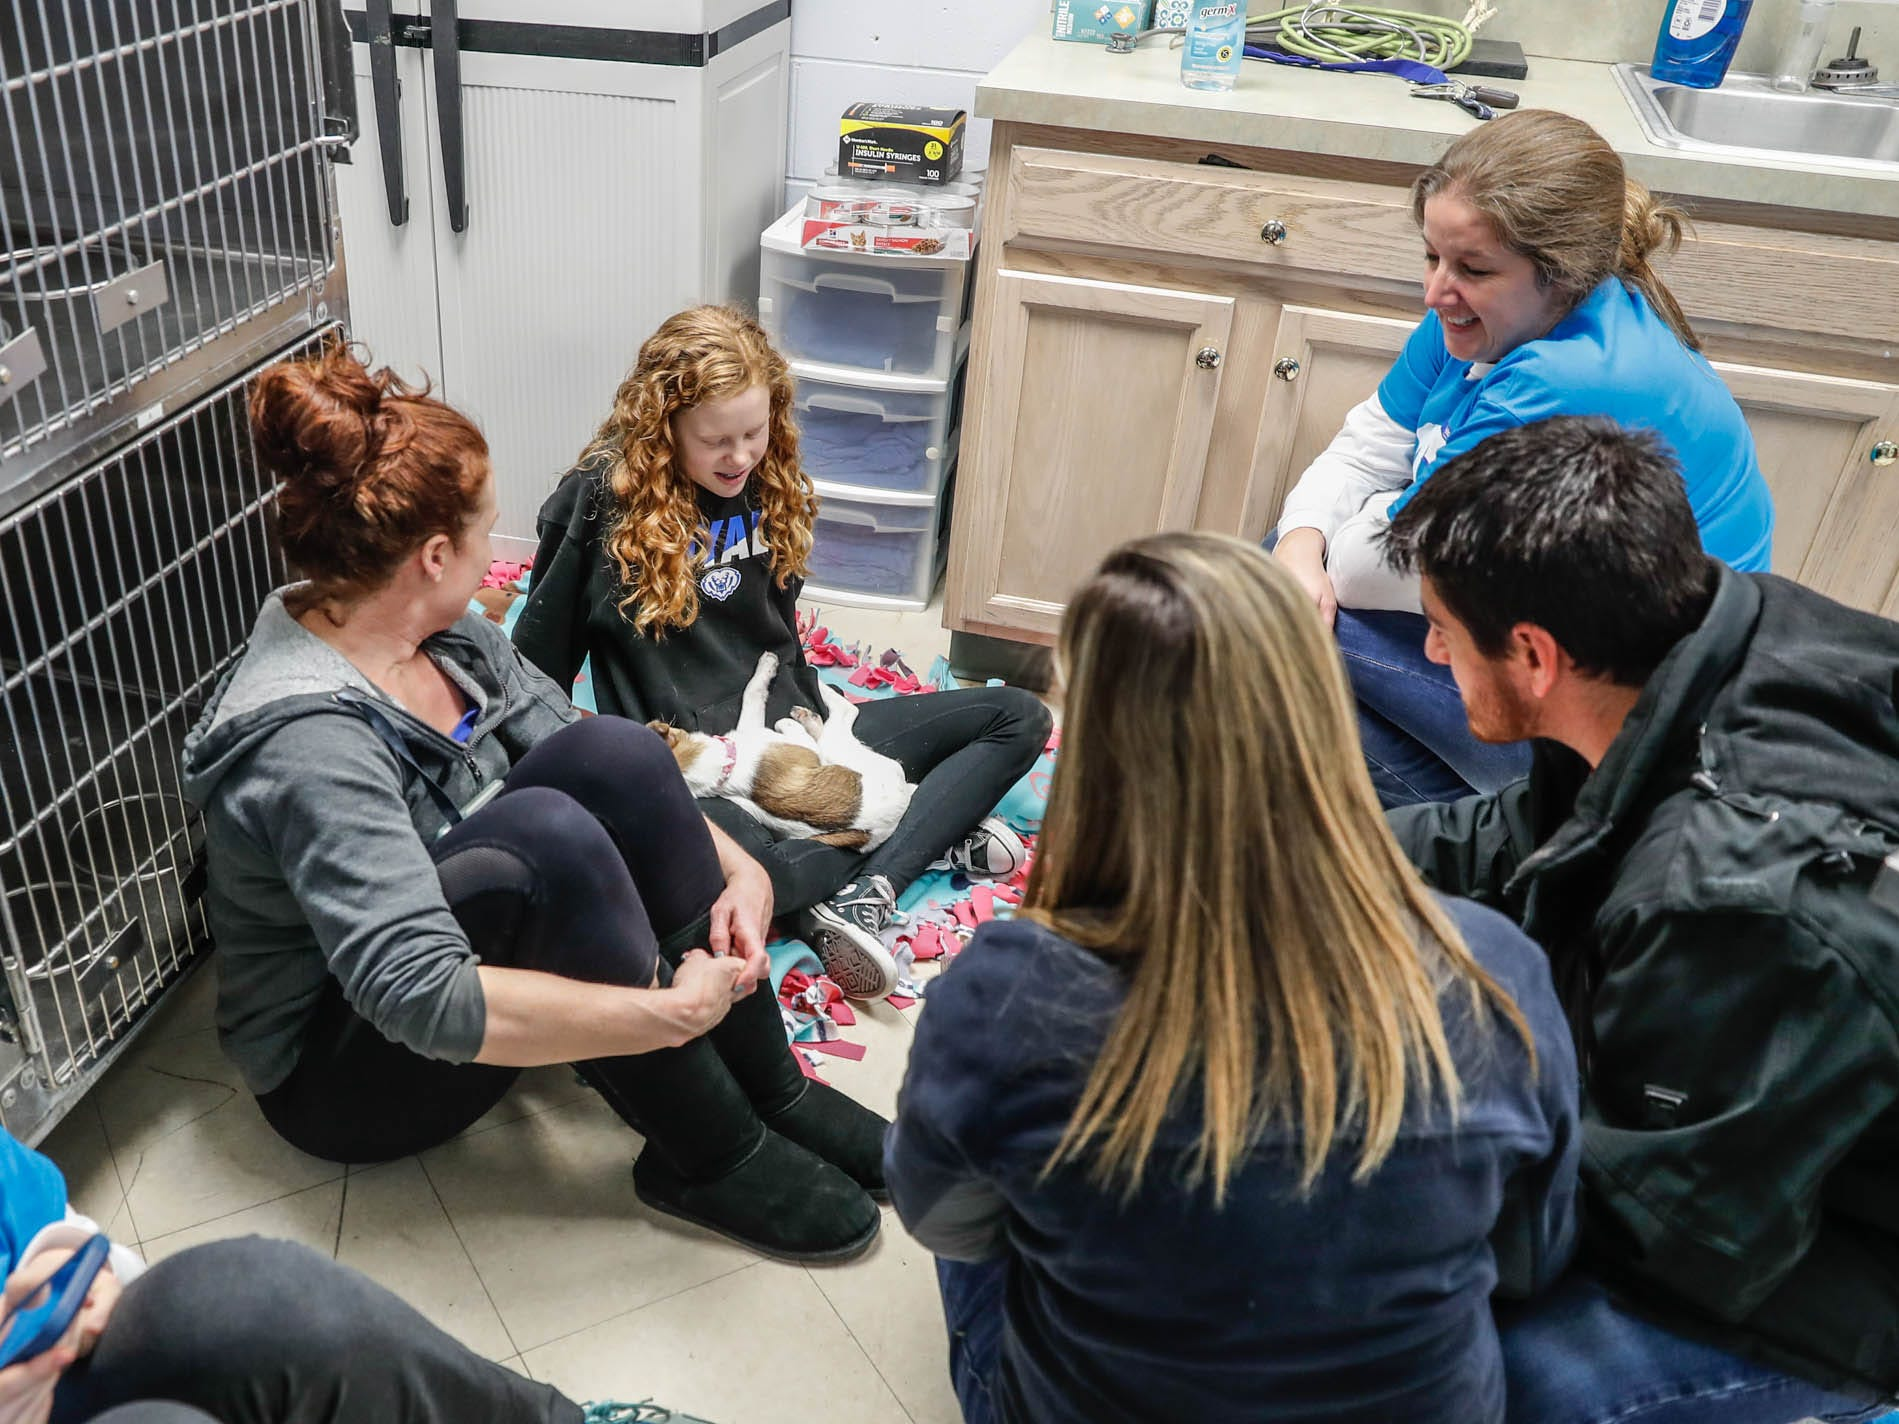 Guests and volunteers cuddle a puppy during the Puppy and Kitten Baby Shower, held at Indy Humane on Sunday, March 10, 2019. The event educates families on Indy Humane's foster care program, as Fosters are needed in the spring during puppy and kitten season.